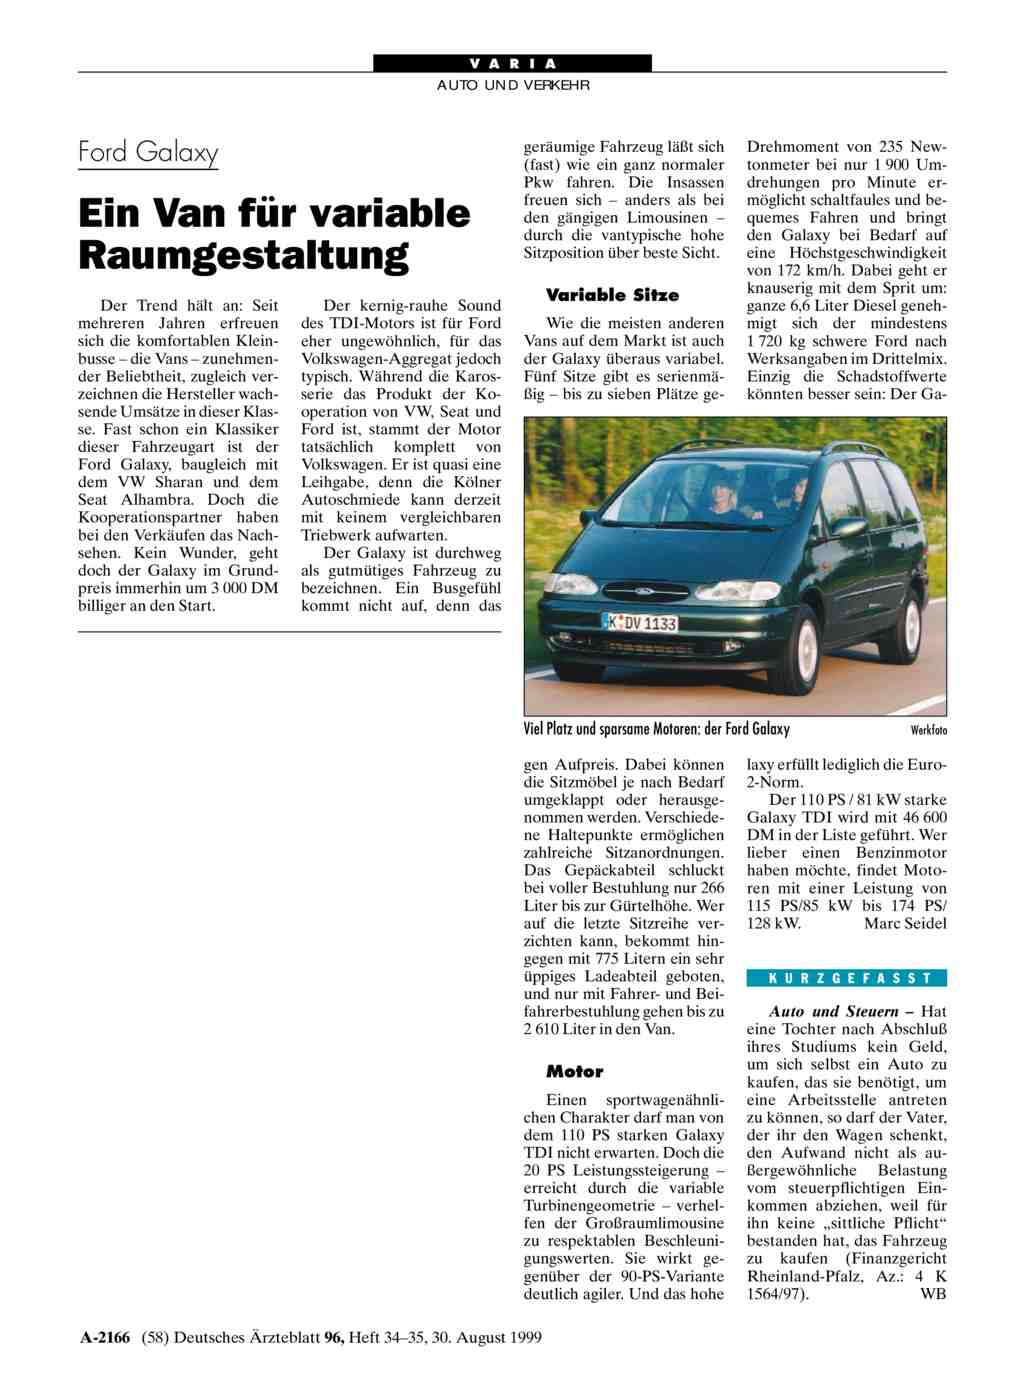 Ford galaxy ein van f r variable raumgestaltung for Raumgestaltung literatur